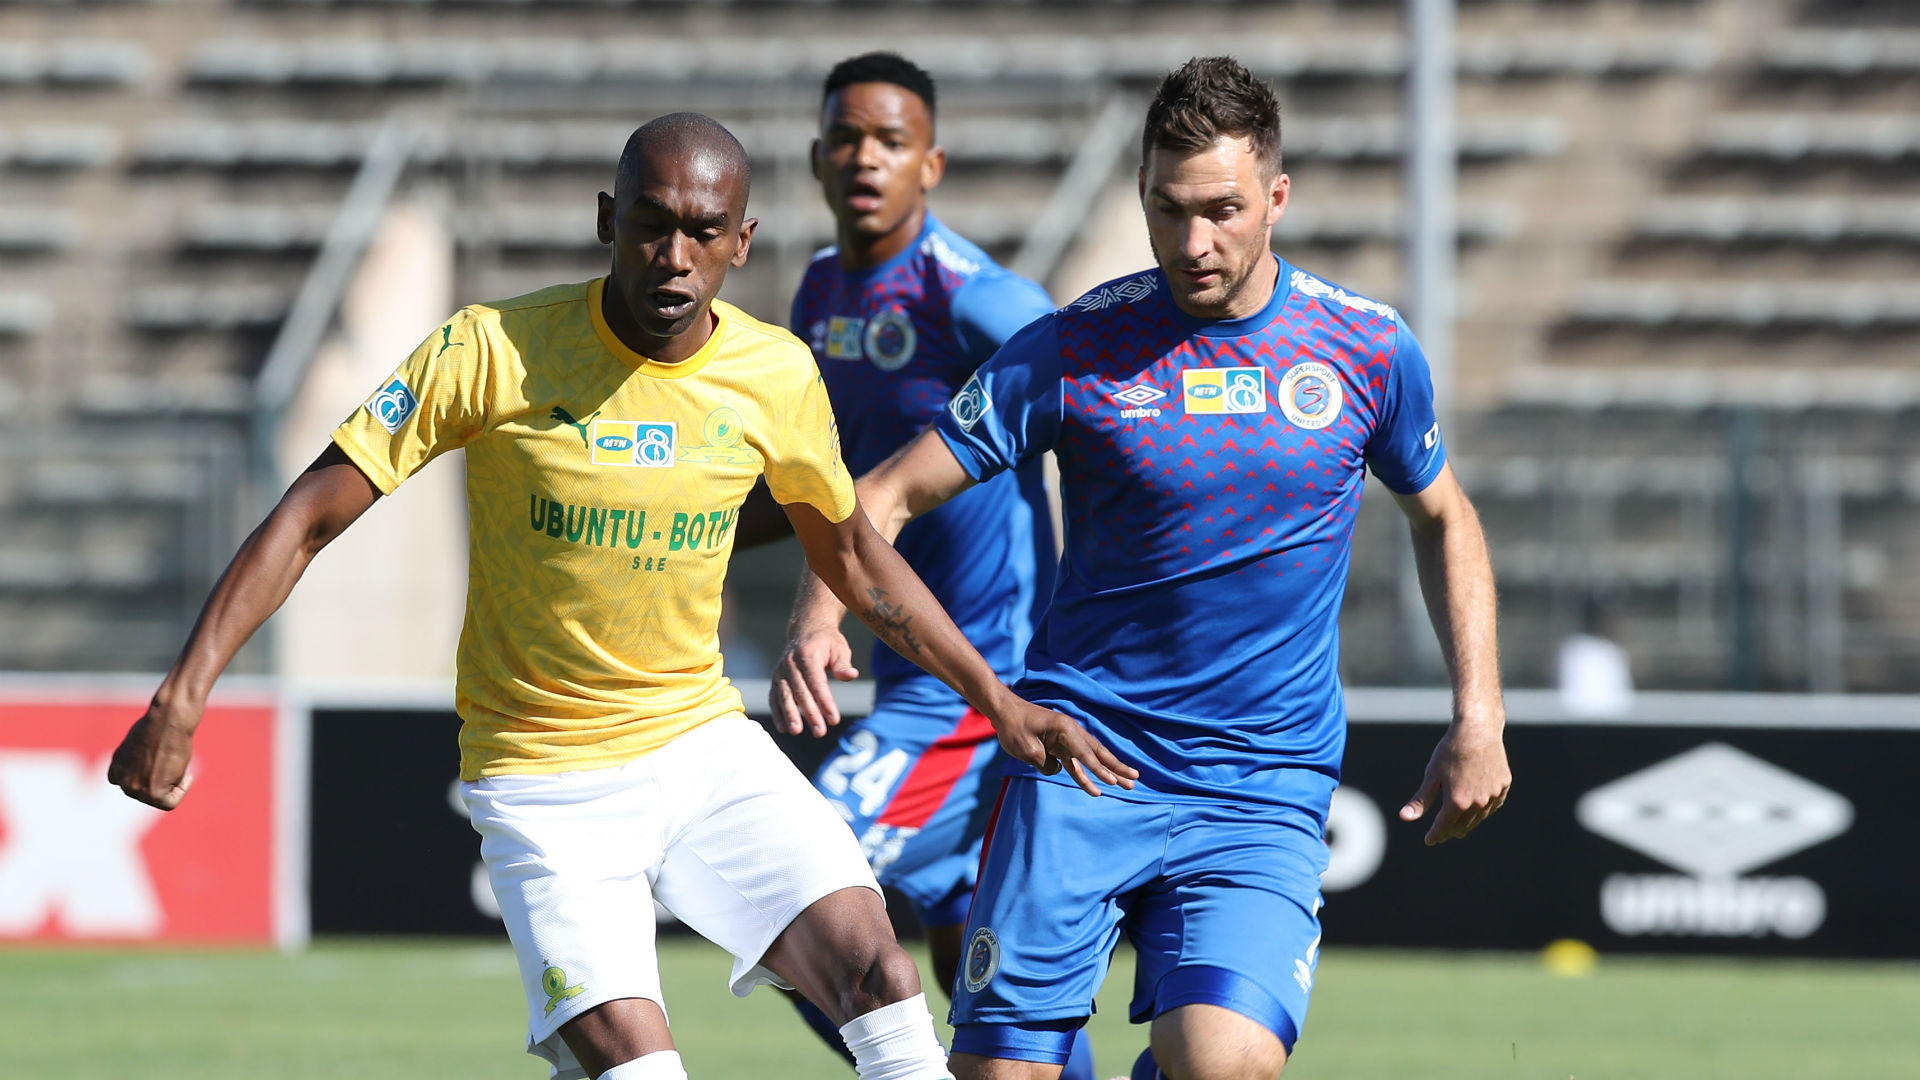 SuperSport United keen to keep Grobler amid reported Mamelodi Sundowns interest